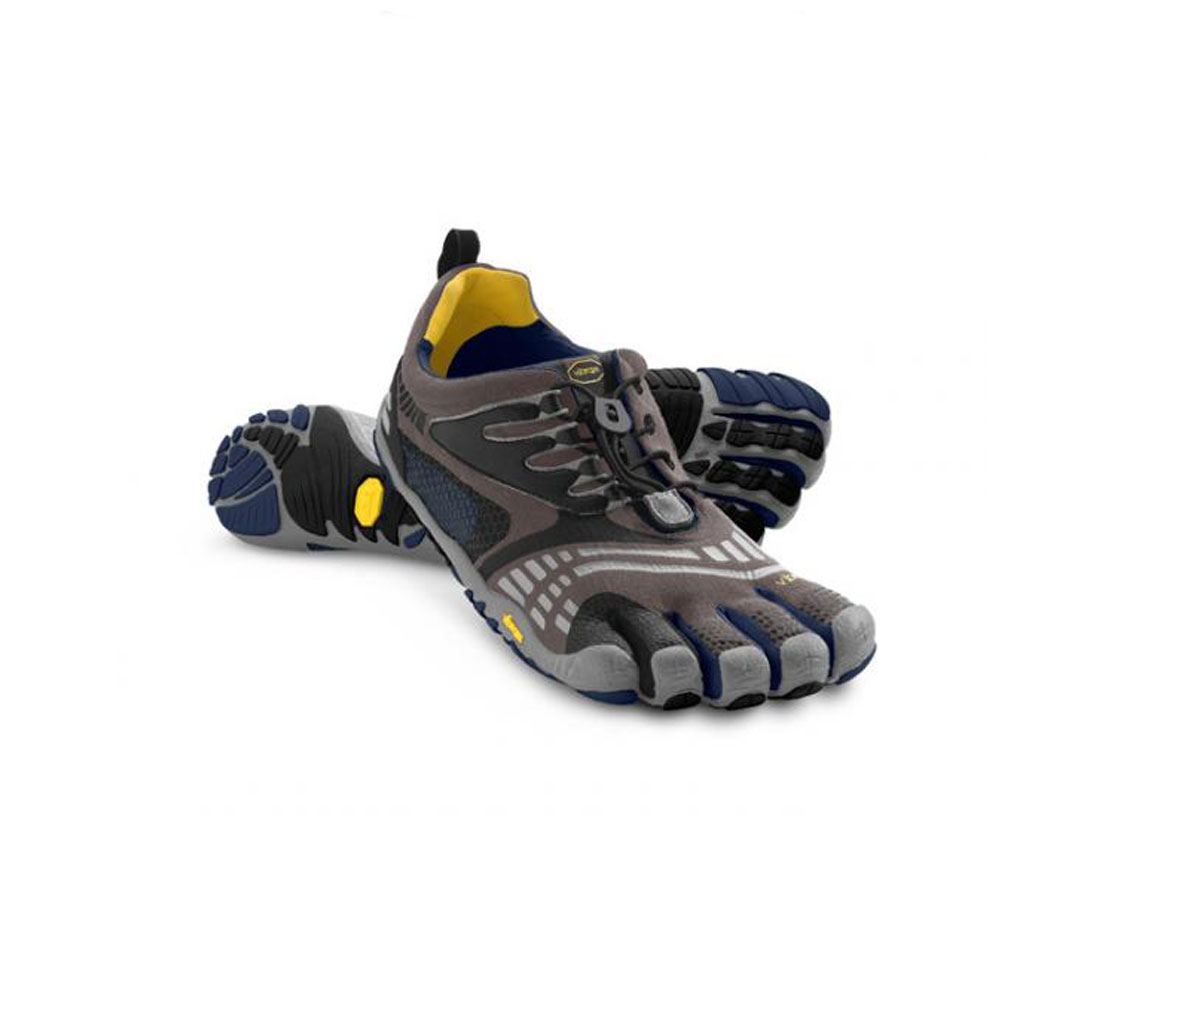 80efa6680662 10 Best Running Shoes for Guys With Problem Feet - Men s Journal